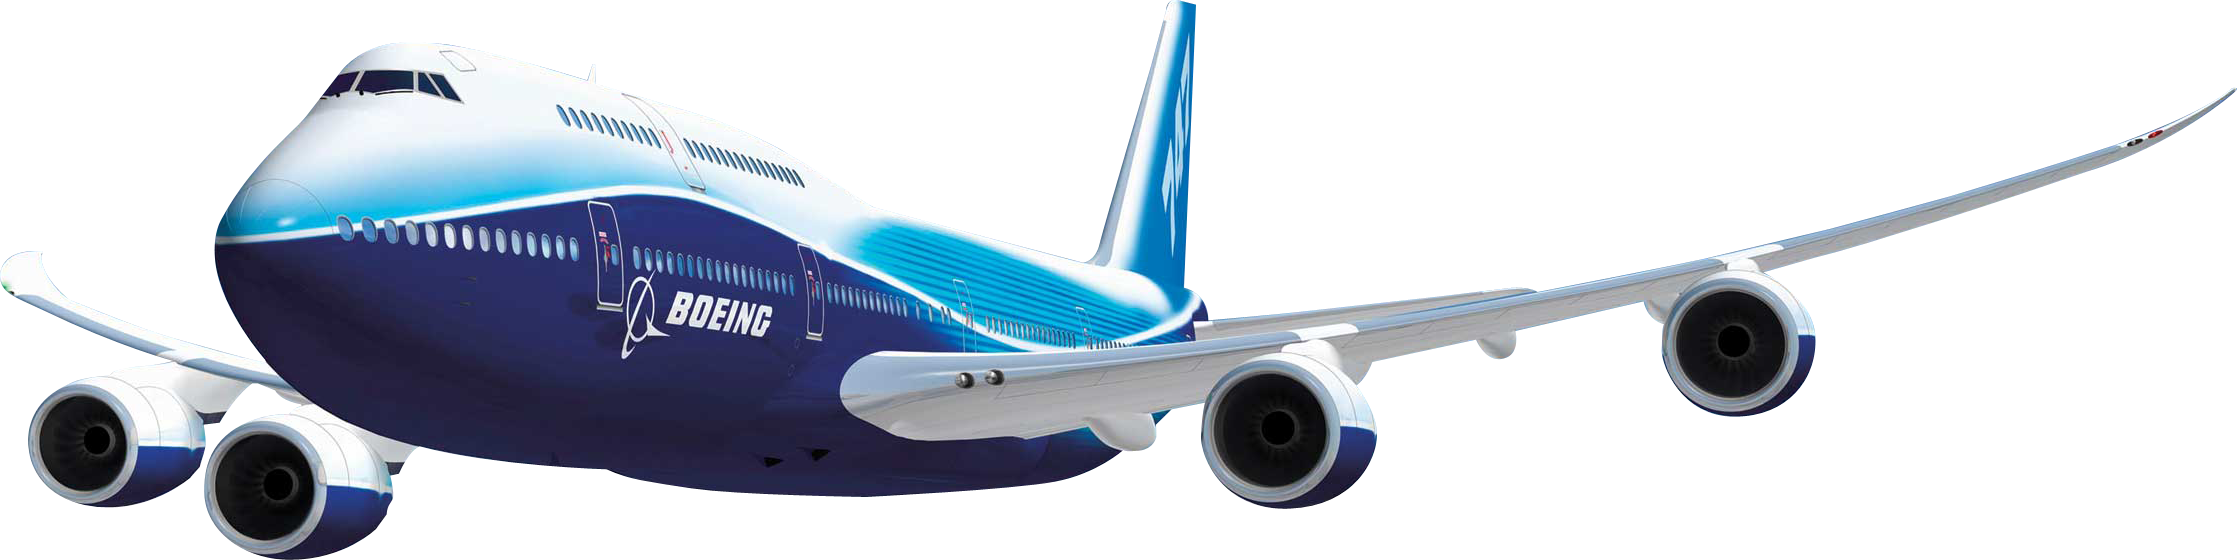 airplane with banner png clipart panda free clipart images airplane with banner clipart aeroplane with banner clipart